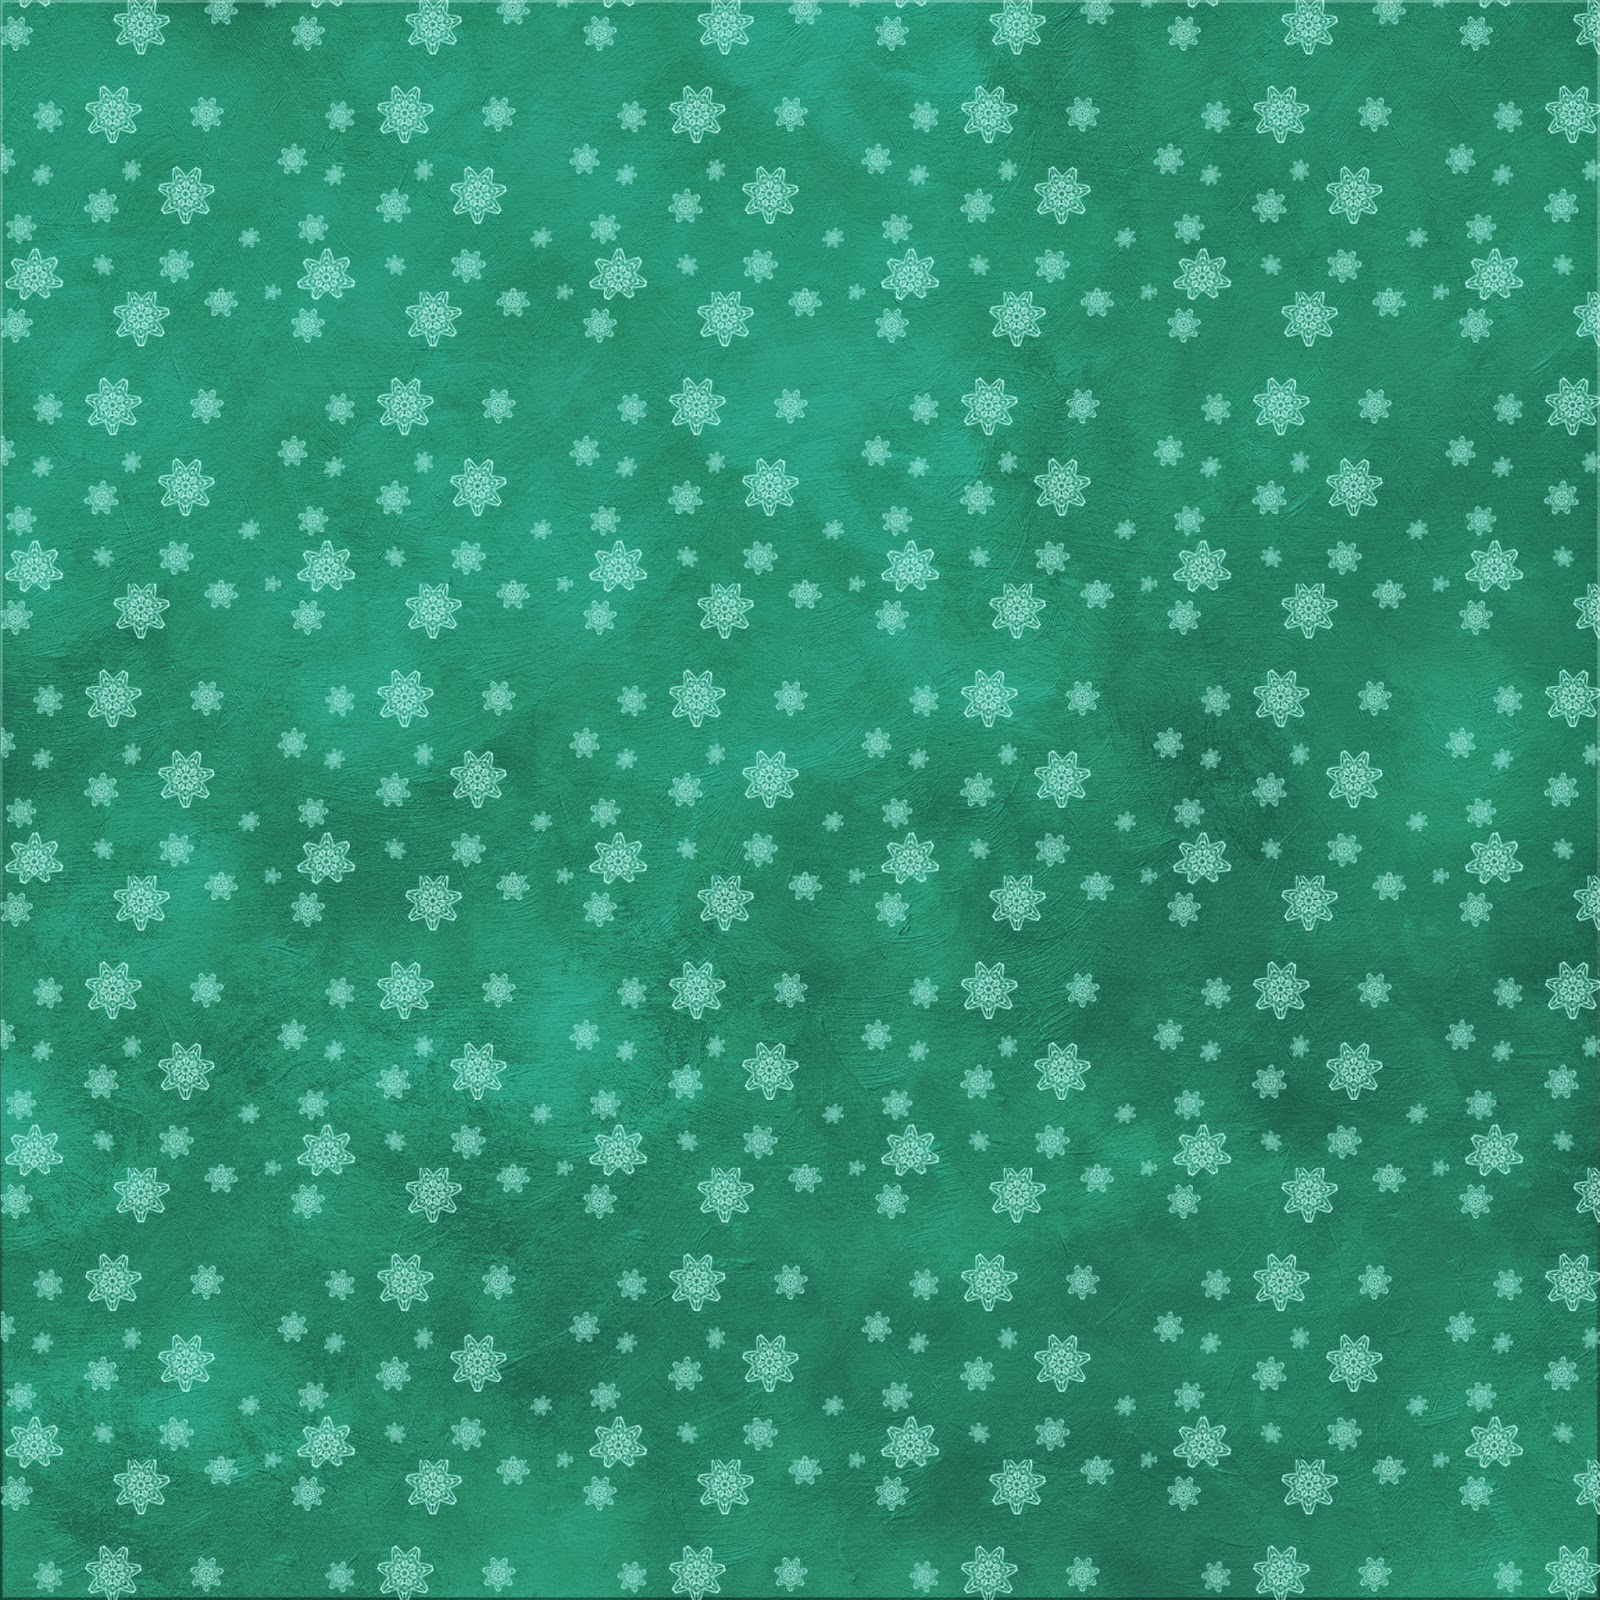 free christmas scrapbook paper high-res teal